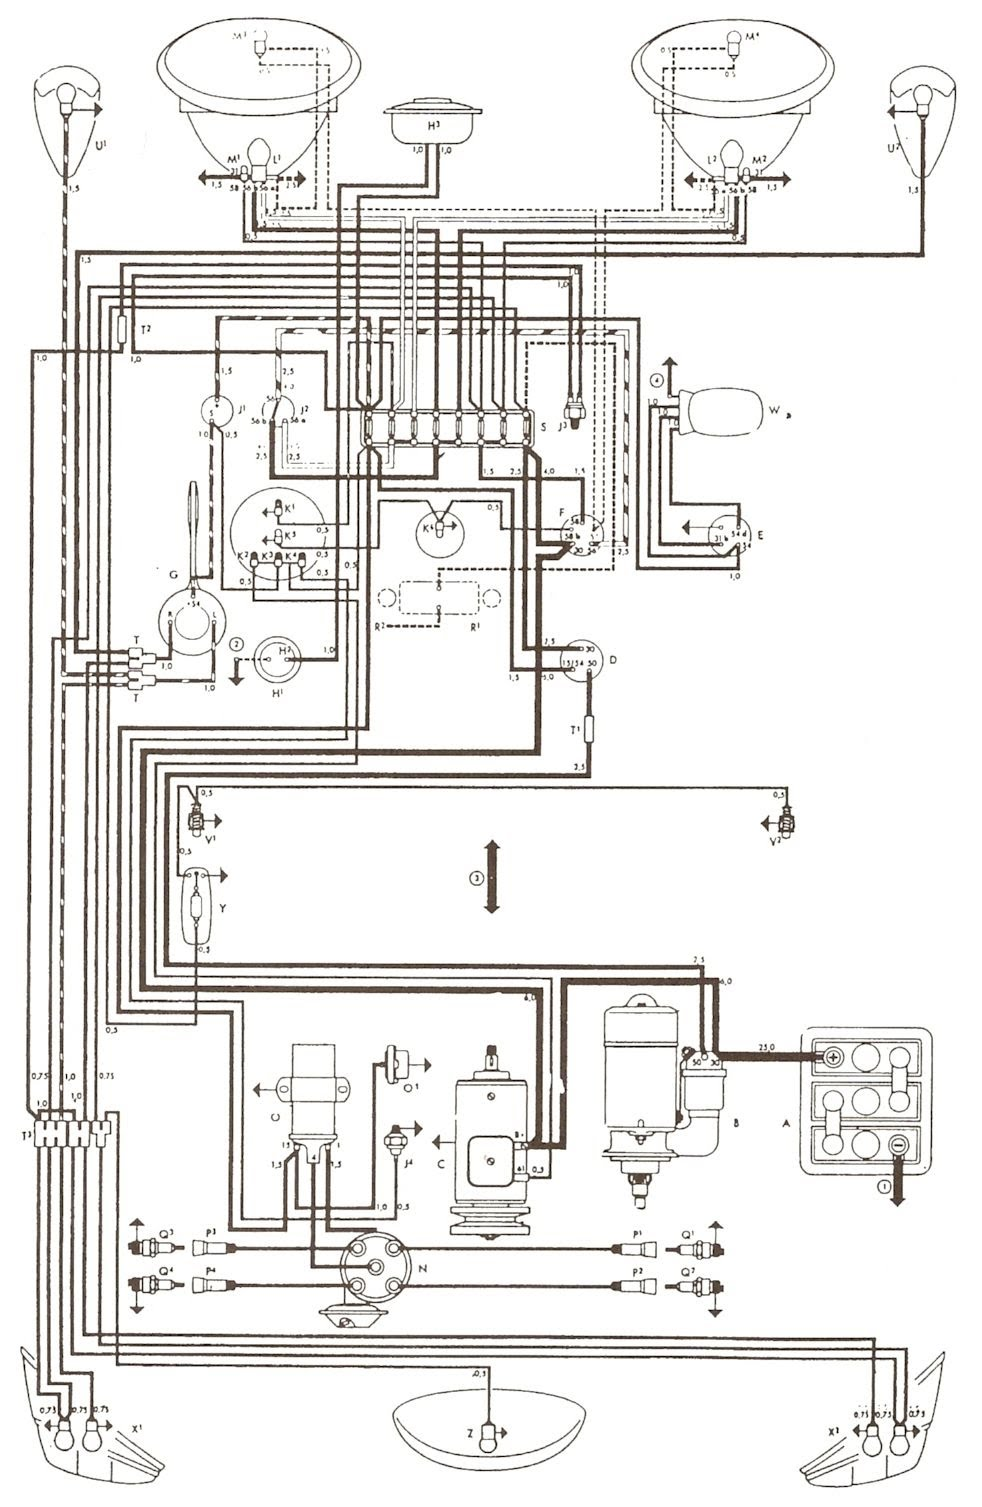 1968 Vw Beetle Coil Wiring Automotive Diagram Volkswagen Ignition Diagrams Switch For Bug Get Ghia W V